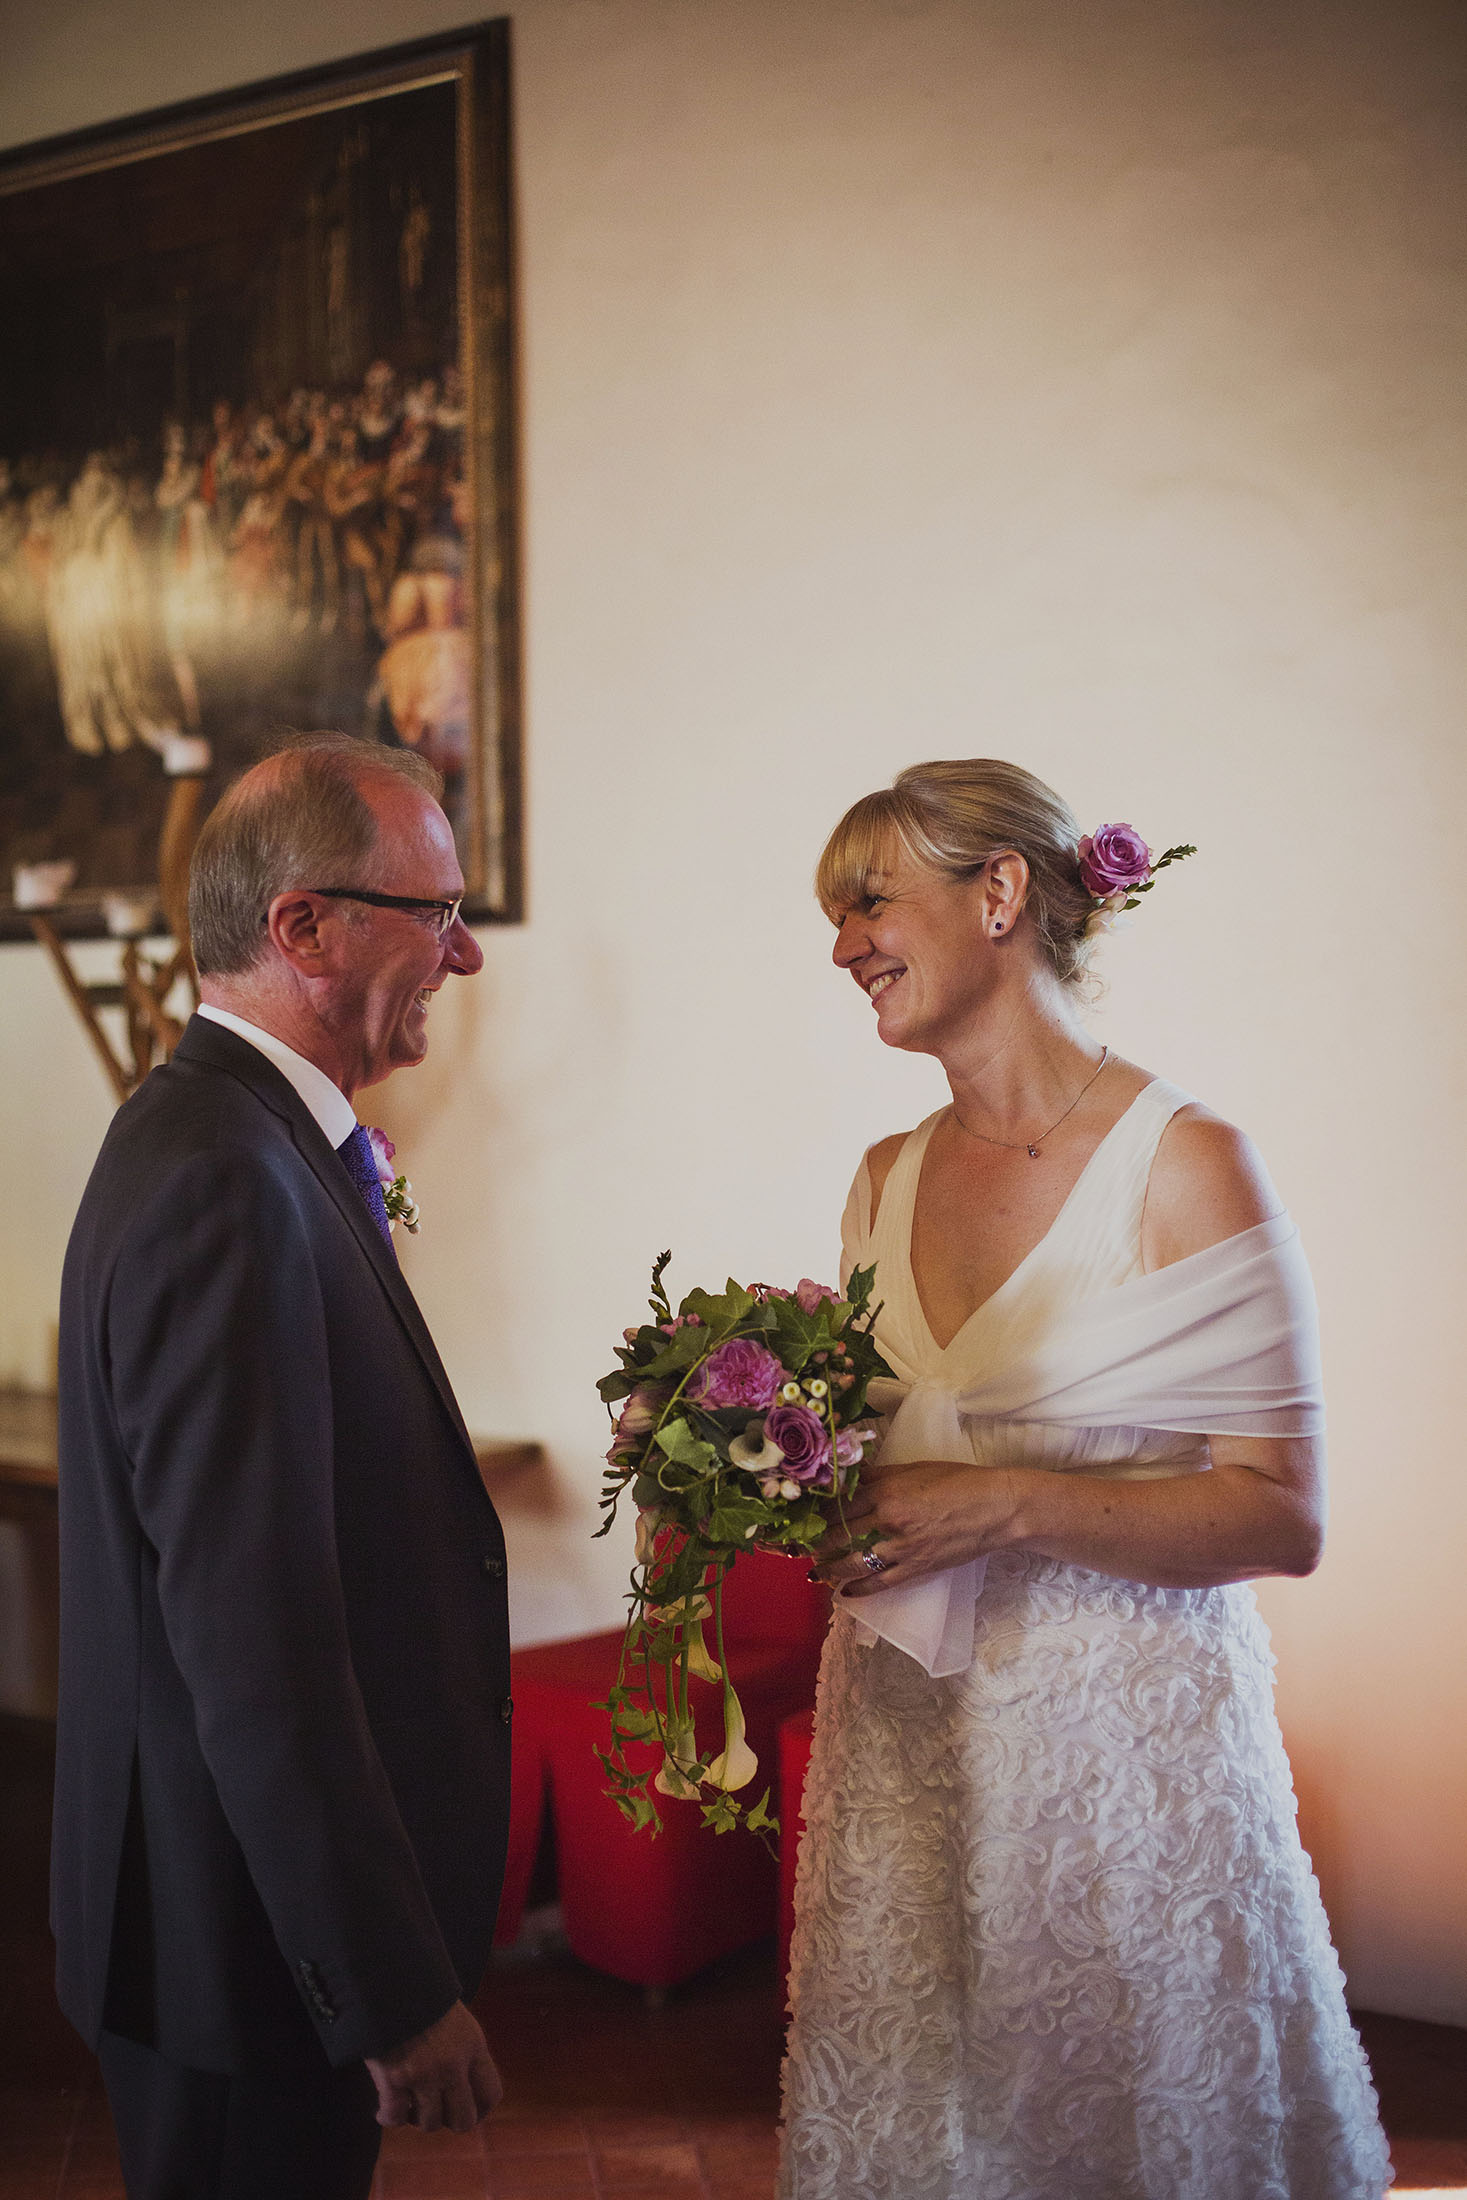 just married at chateaux des ducs de joyeuses france destination wedding photography